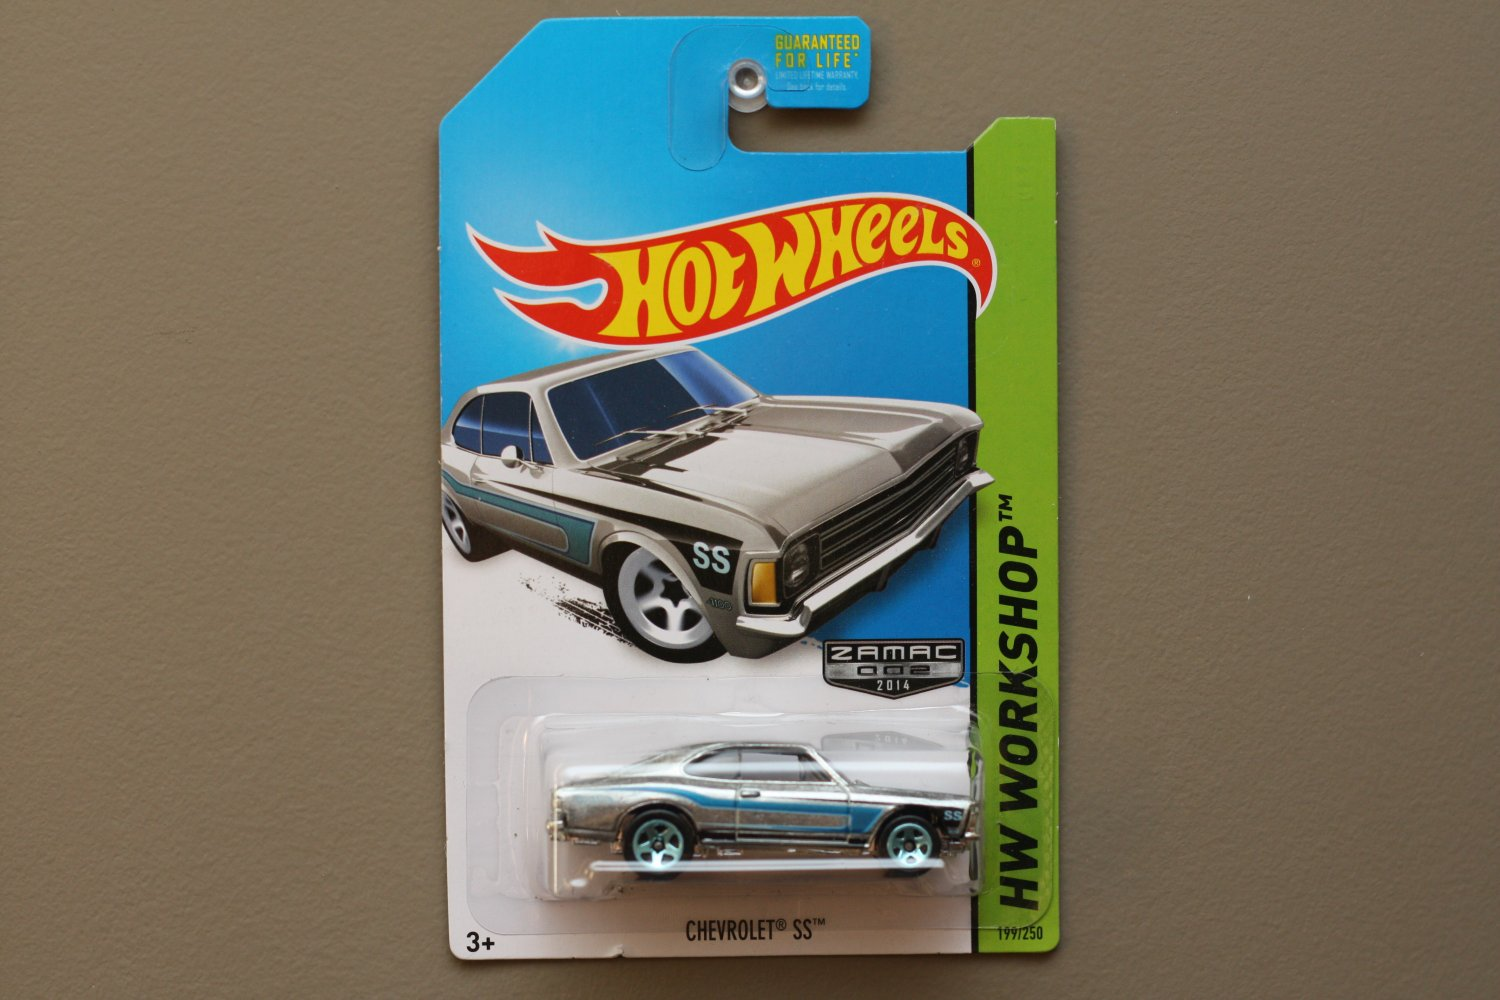 Hot Wheels 2014 HW Workshop Chevrolet SS (Opala) (ZAMAC silver - Walmart Excl.)